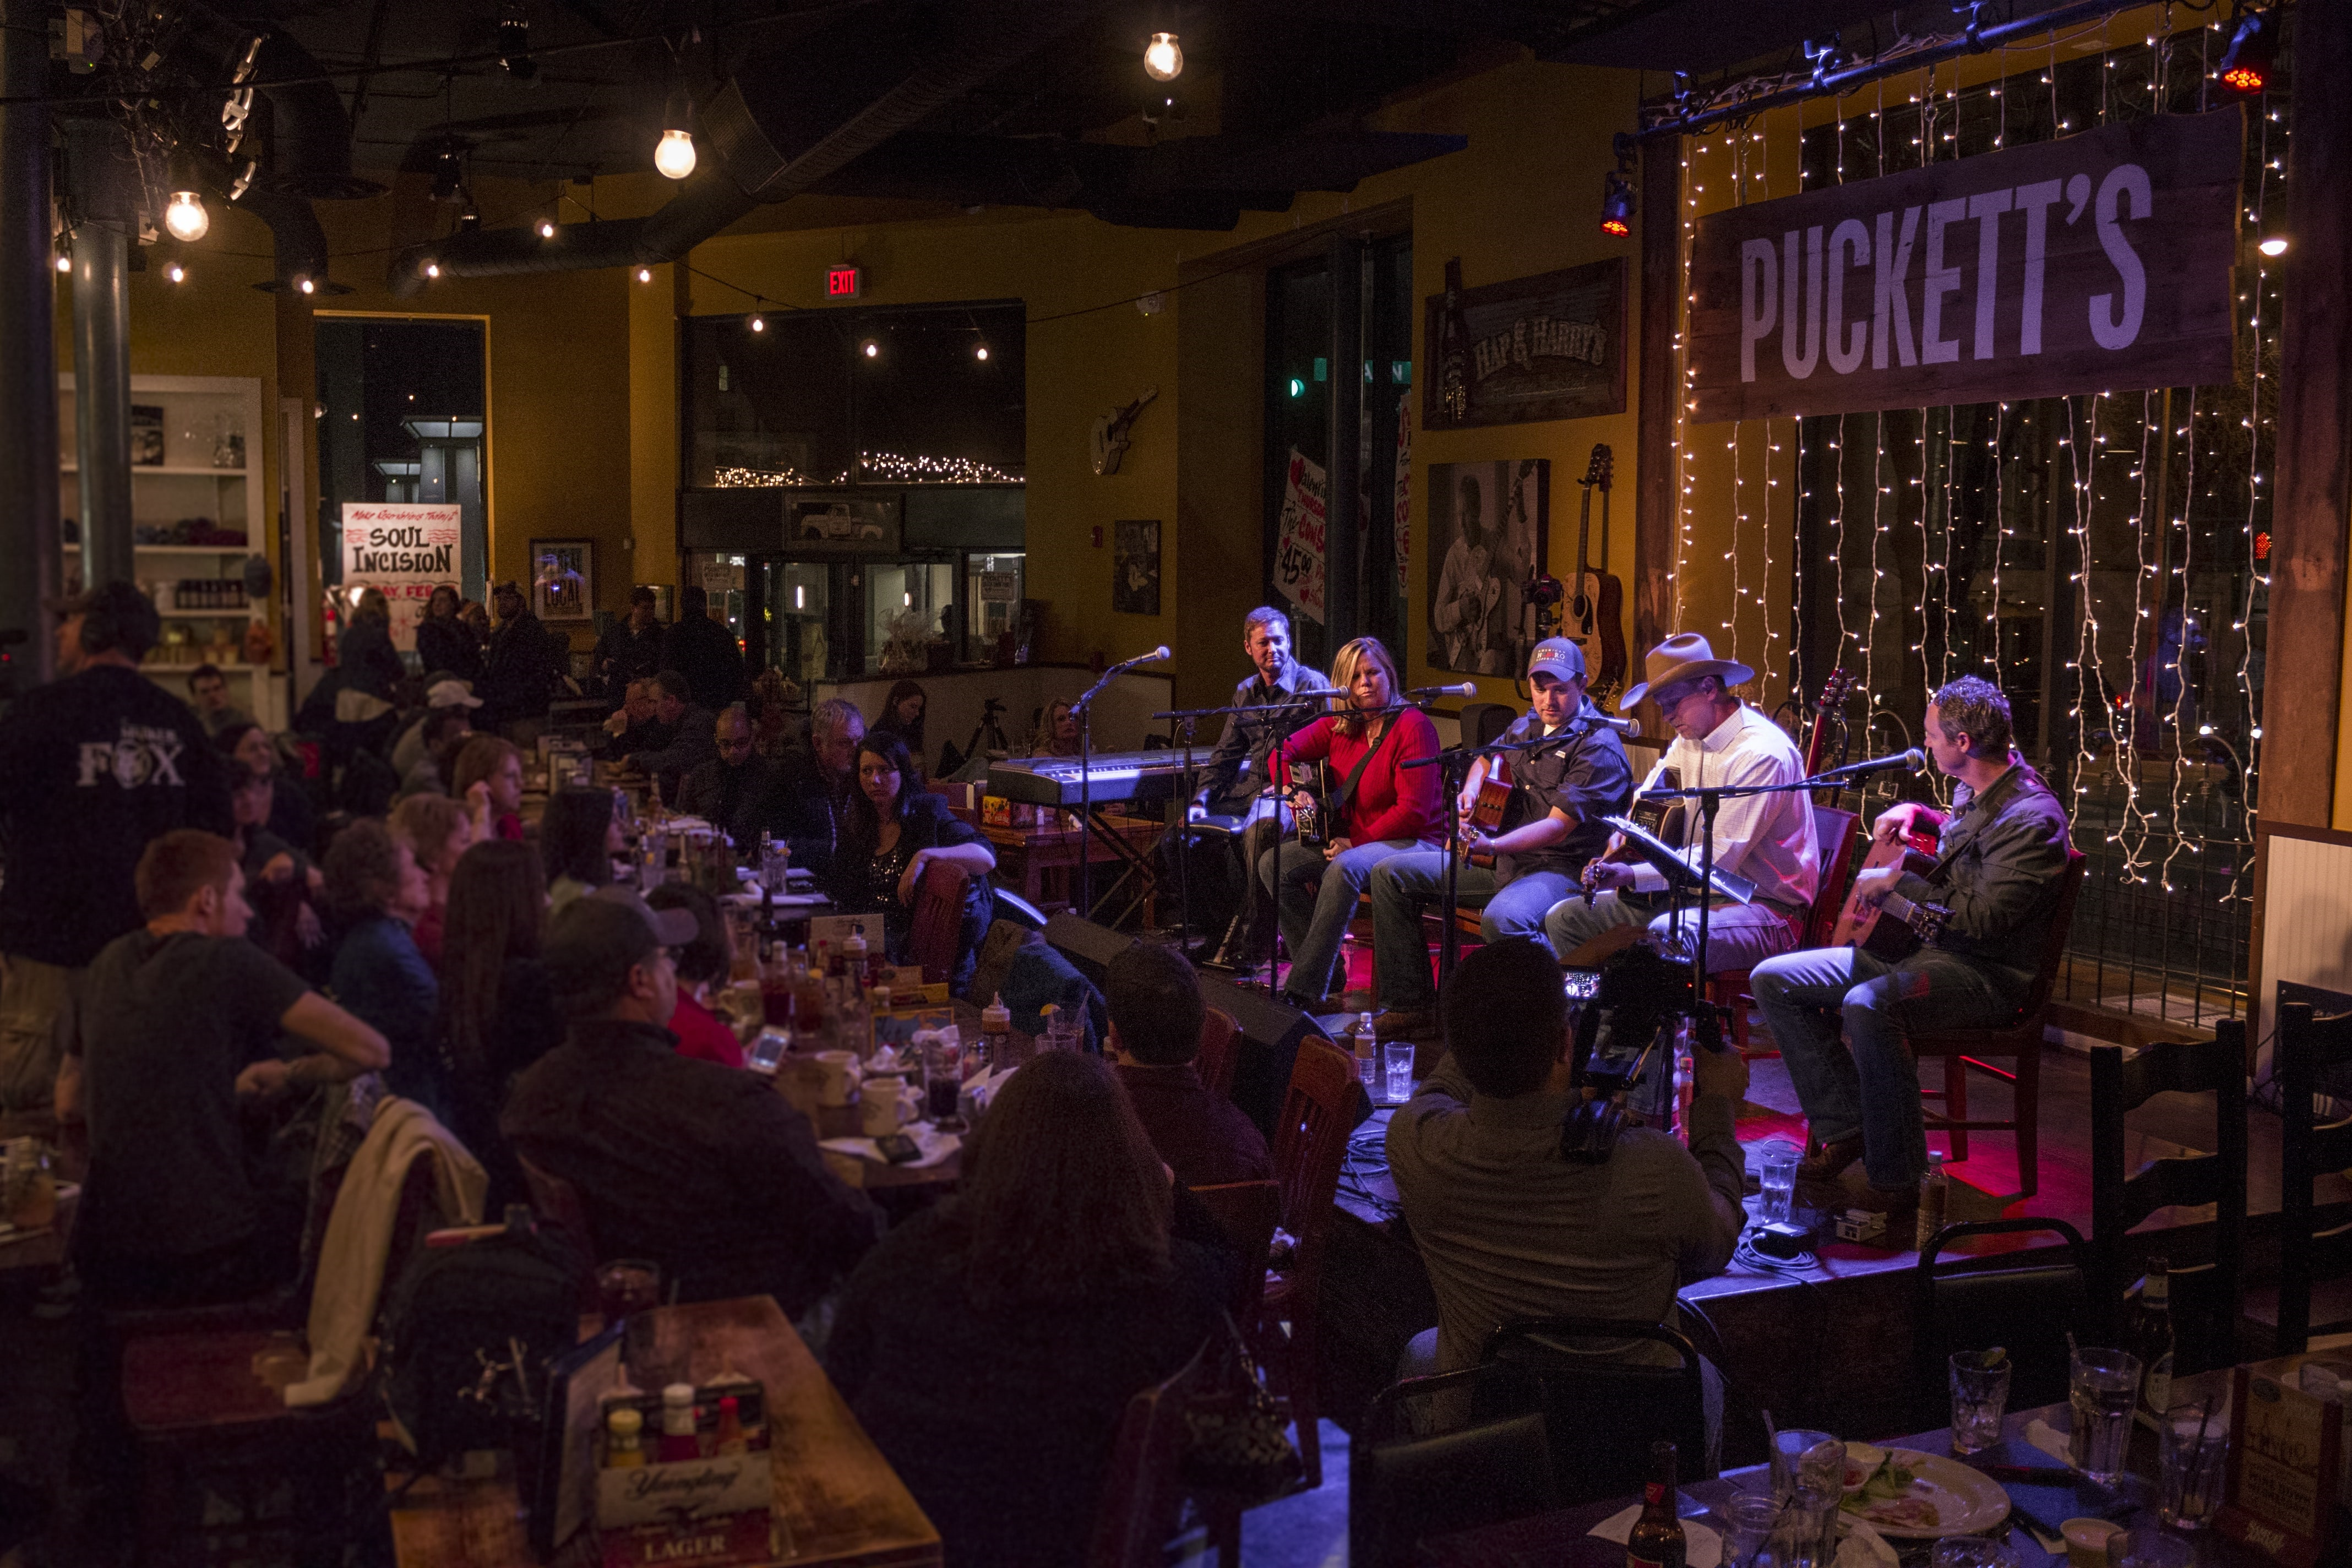 Puckett's Grocery & Restaurant; Photo credit: Amy Whidby